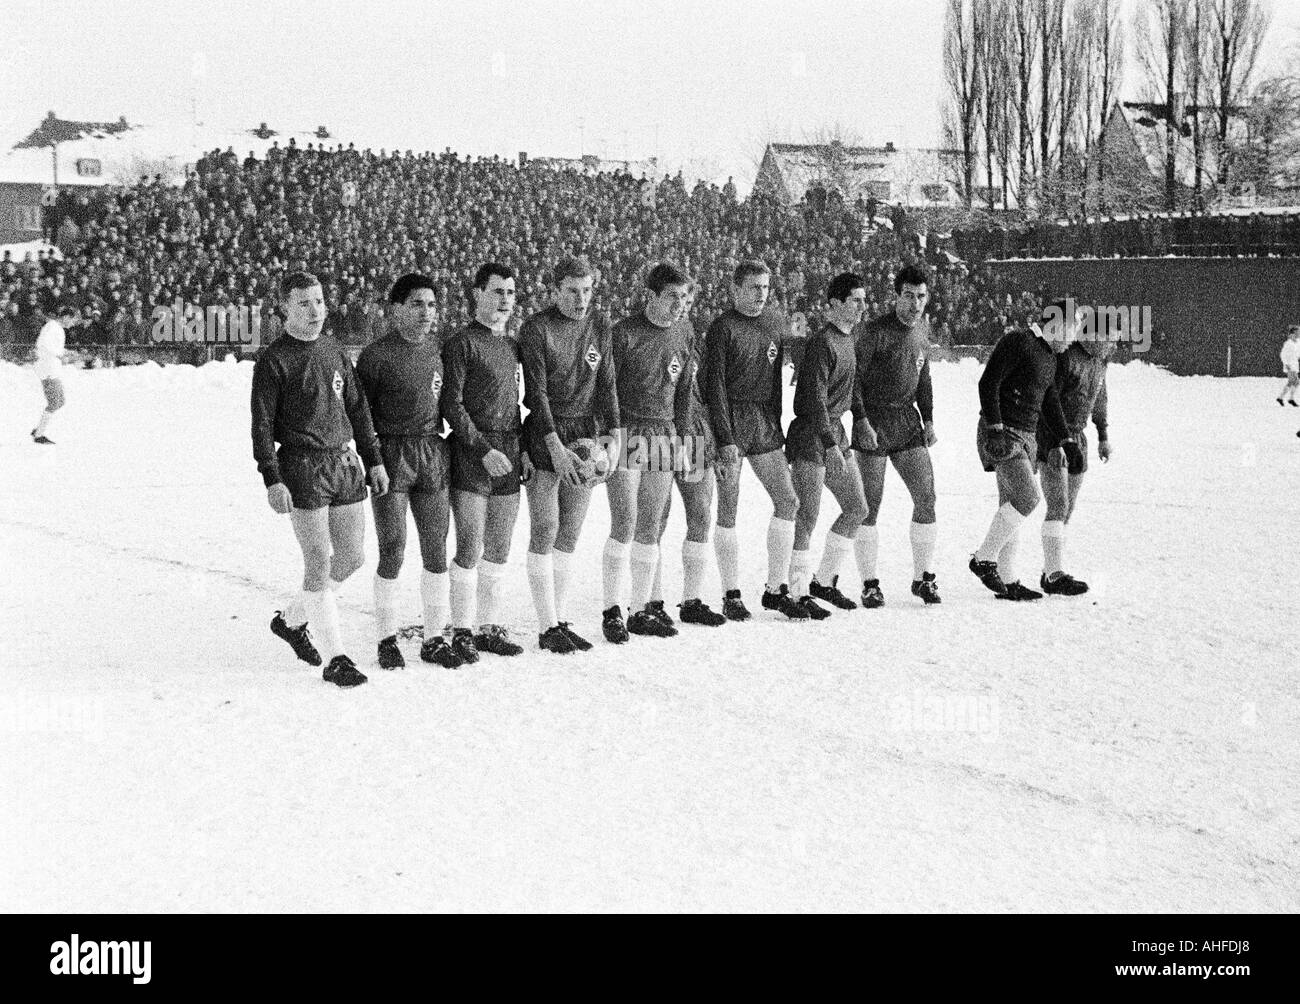 football, friendly game, 1964, Boekelberg Stadium in Moenchengladbach, Borussia Moenchengladbach versus 1. FC Cologne 4:1, team photograph, shot of the Gladbach team, f.l.t.r. Bernd Rupp, Werner Waddey, Arno Ernst, Guenter Netzer, Jupp Heynckes, Rudolf Po - Stock Image